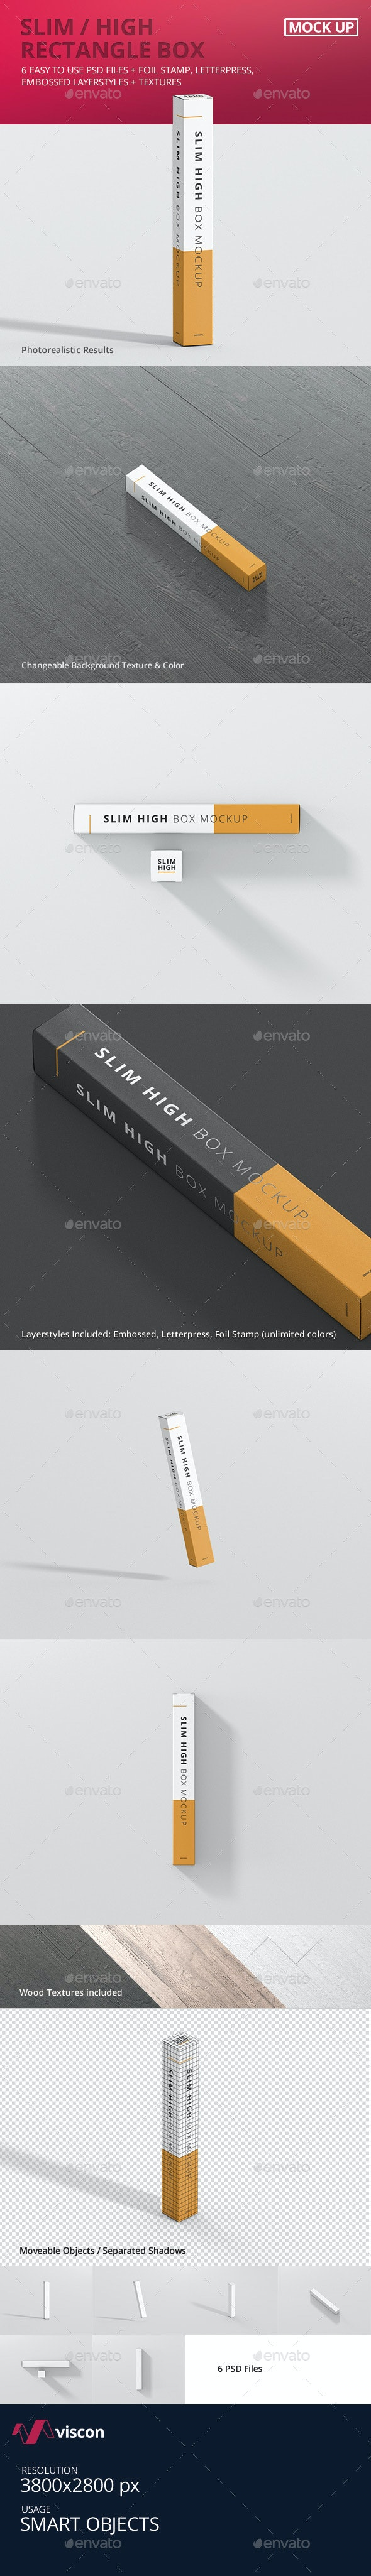 Box Mockup - Slim High Rectangle - Miscellaneous Packaging